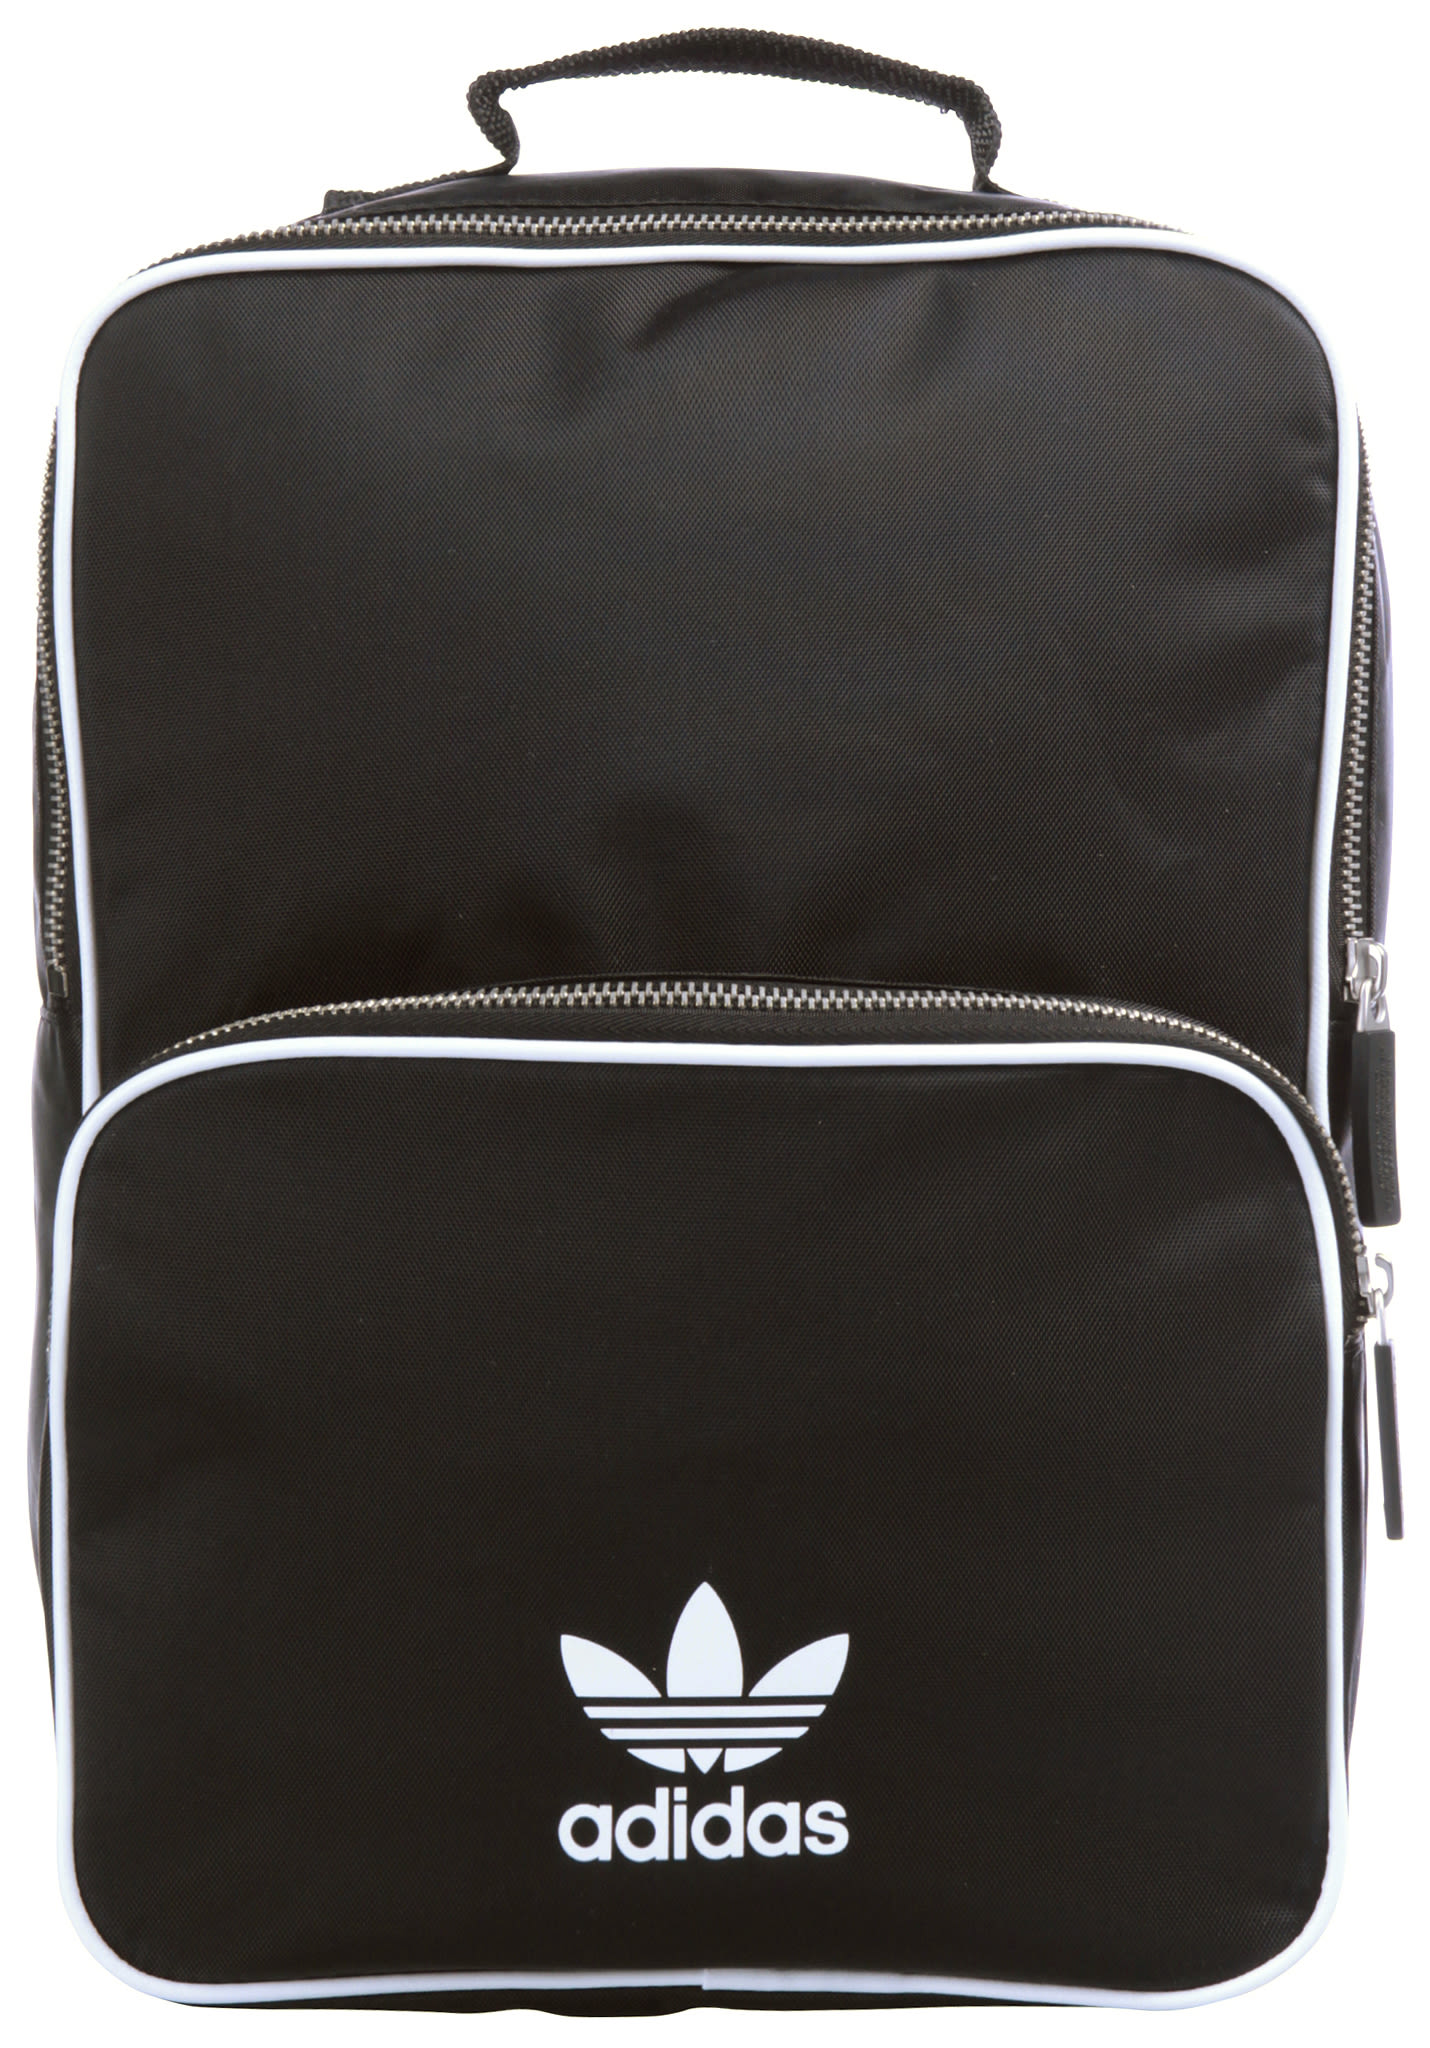 efbb85351d ADIDAS ORIGINALS Classic M Adicolor - Backpack for Men - Black - Planet  Sports